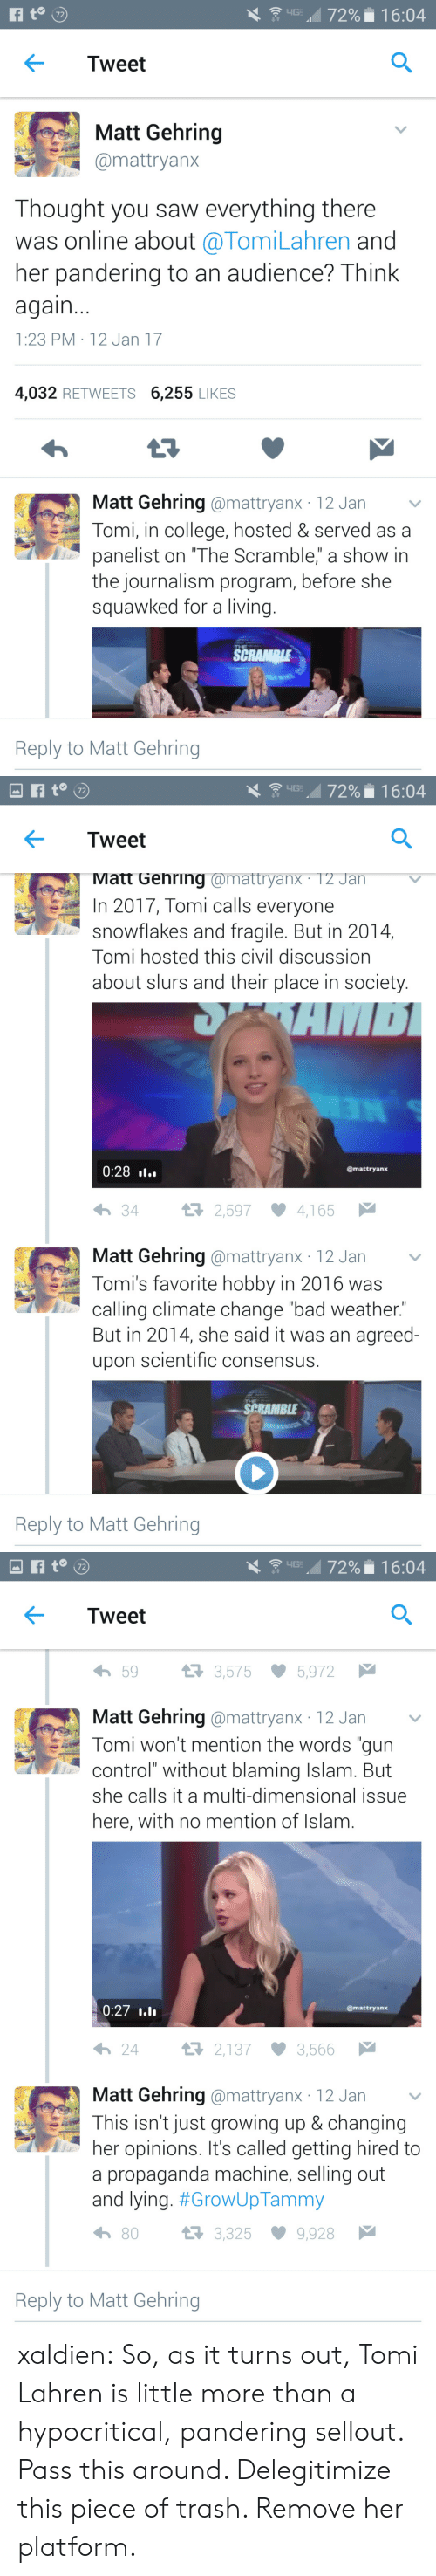 """Bad, College, and Growing Up: 72  Tweet  Matt Gehring  mattryanx  Thought you saw everything there  was online about @TomiLahren and  her pandering to an audience? Think  again  1:23 PM 12 Jan 17  4,032 RETWEETS 6,255 LIKES  Matt Gehring @mattryanx 12 Jan v  Tomi, in college, hosted & served as a  panelist on """"The Scramble,"""" a show in  the journalism program, before she  squawked for a living.  SCRAMRI  Reply to Matt Gehring   \  up , 72% . 1 6:04  Tweet  Matt Gehring @mattryanX. T2 Jan  In 2017, Tomi calls everyone  snowflakes and fragile. But in 2014,  Tomi hosted this civil discussiorn  about slurs and their place in society  0:28 »l..  @mattryanx  わ34  2,597 ·4,165  Matt Gehring @mattryanx 12 Jan v  Tomi's favorite hobby in 2016 was  calling climate change """"bad weather.""""  But in 2014, she said it was an agreed-  upon scientific consensus.  SPRAMBLE  Reply to Matt Gehring   Tweet  わ59  3,575  5,972  Matt Gehring @mattryanx 12 Jan  Tomi won't mention the words """"gun  control"""" without blaming Islam. But  she calls it a multi-dimensional issue  here, with no mention of Islam  0:27  @mattryanx  24  2,137 3,566  Matt Gehring @mattryanx 12 Jan  This isn't just growing up & changing  her opinions. It's called getting hired to  a propaganda machine, selling out  and lying. #GrowUpTammy  h 80  3,325 9,928  Reply to Matt Gehring xaldien: So, as it turns out, Tomi Lahren is little more than a hypocritical, pandering sellout.   Pass this around. Delegitimize this piece of trash. Remove her platform."""